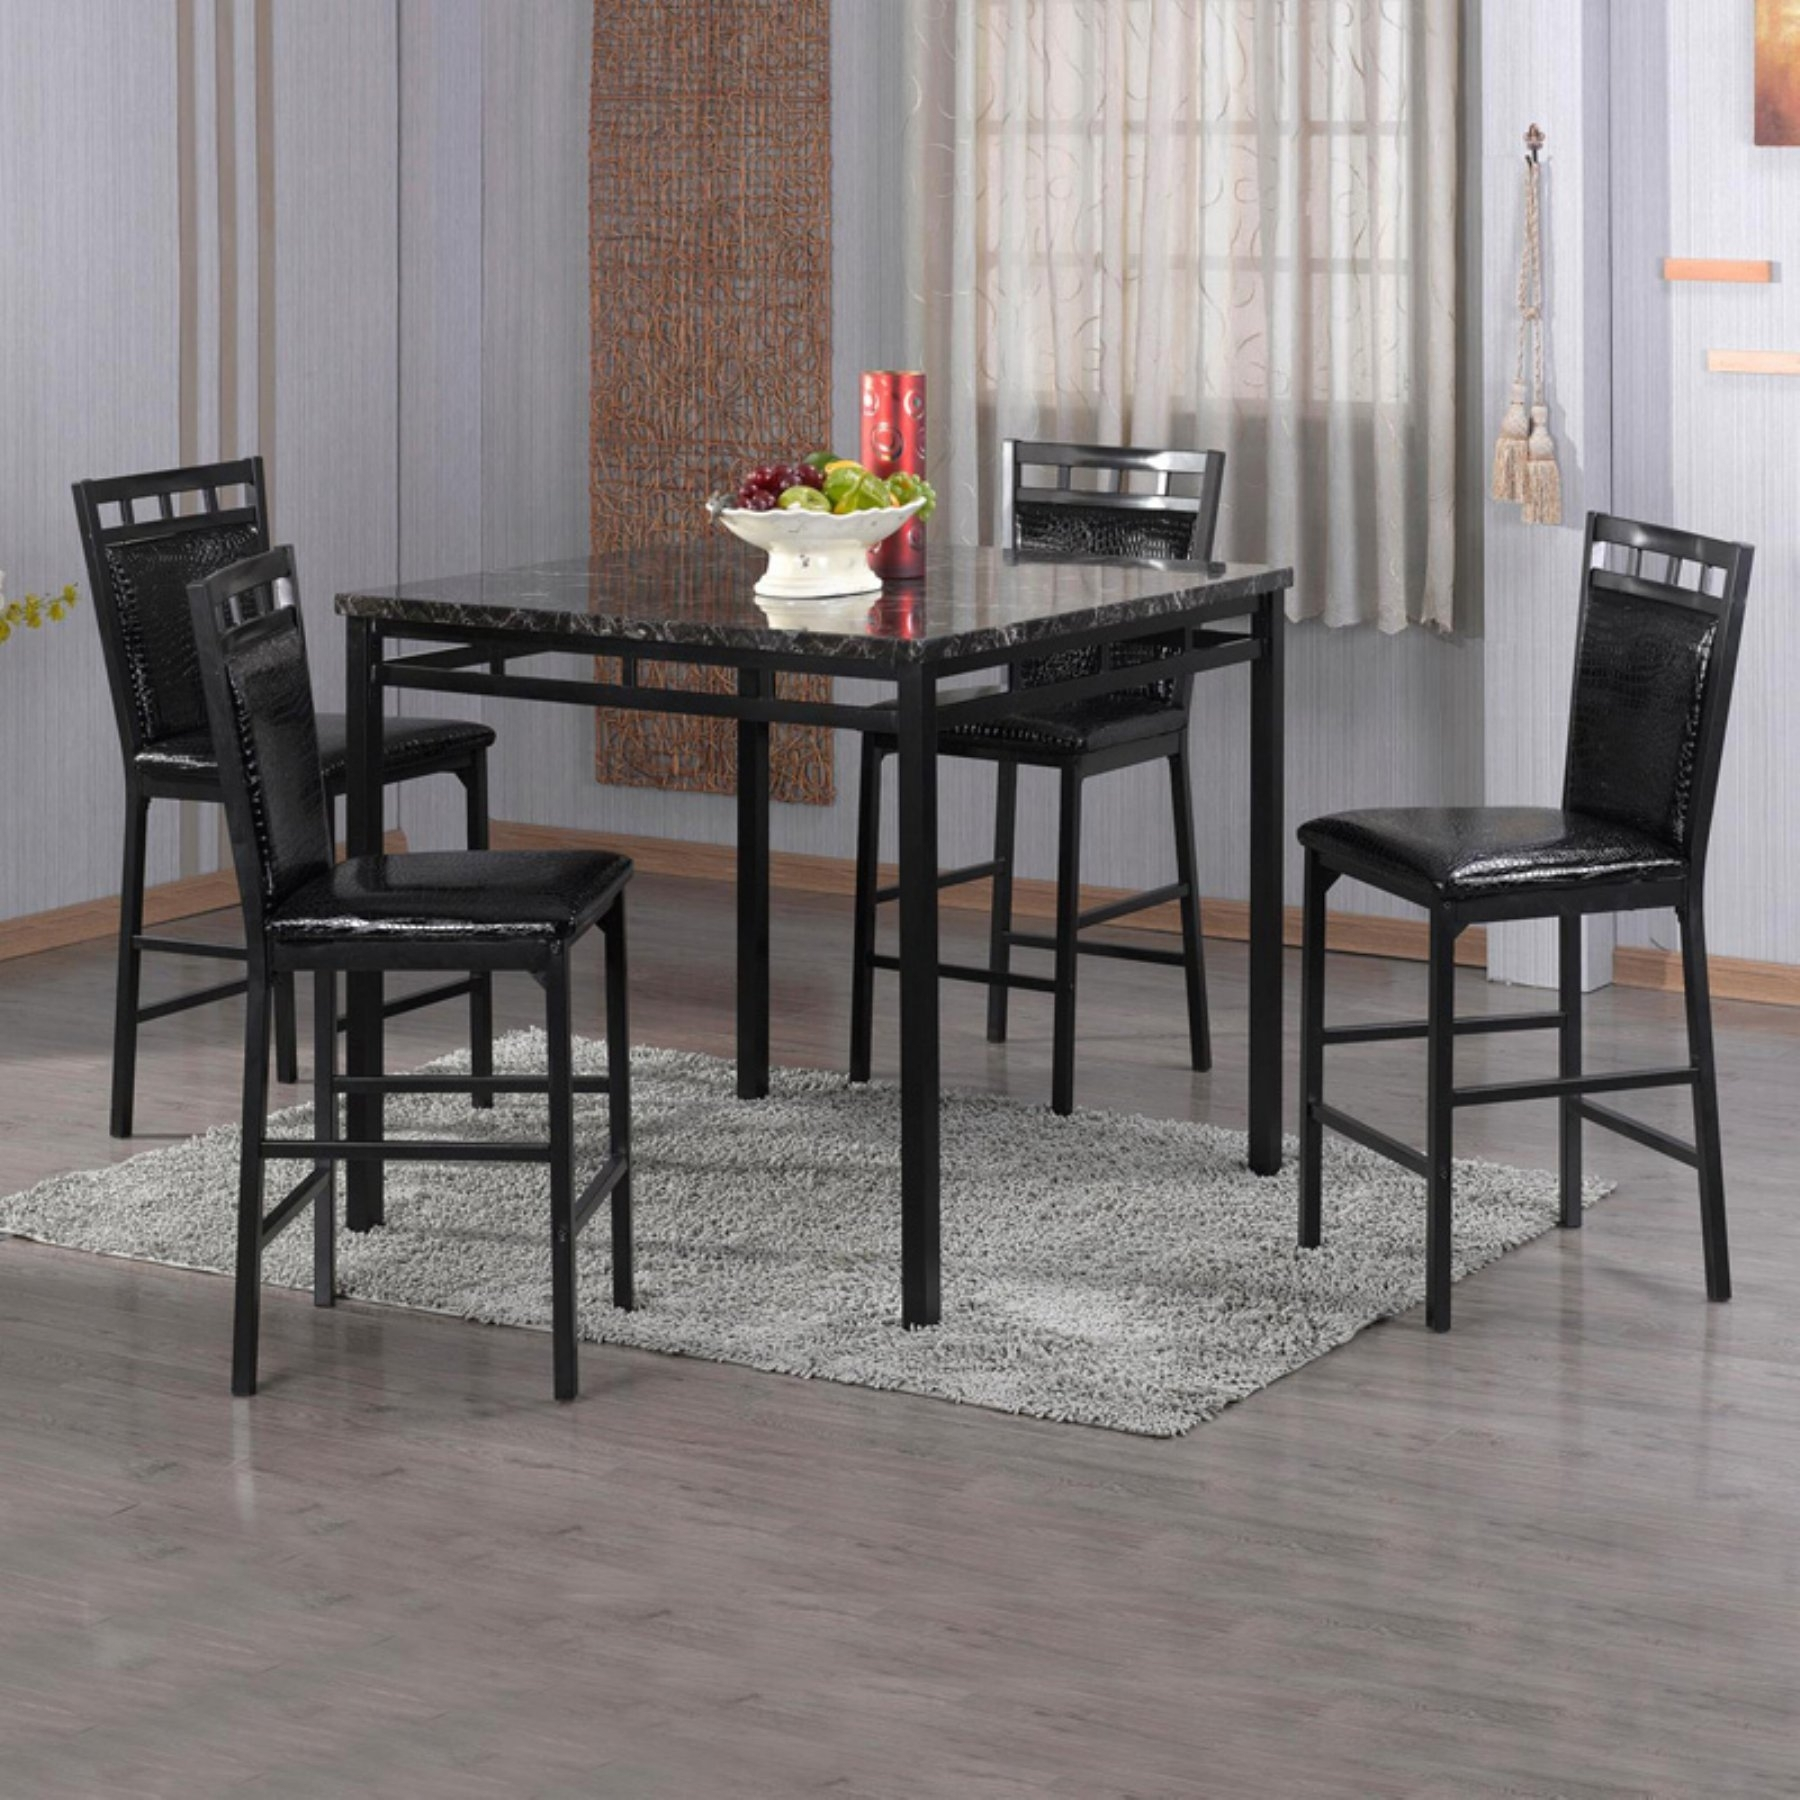 Home Source Industries 5 Piece Counter Height Dining Table Set In With Best And Newest Market 7 Piece Counter Sets (Image 17 of 20)